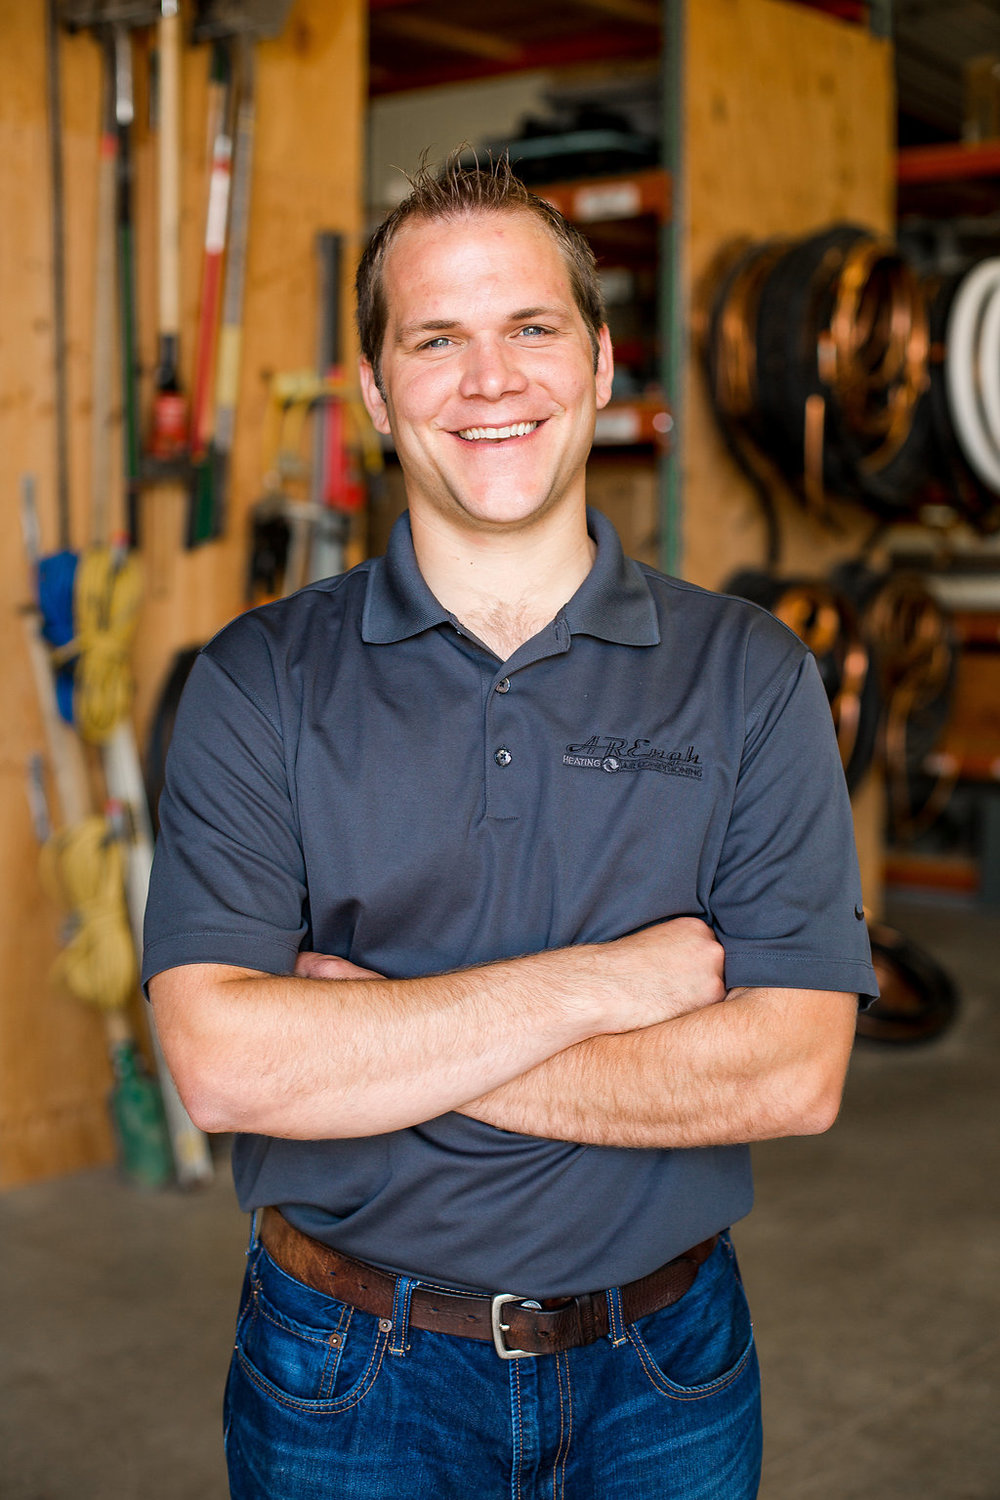 mike welz hvacplumbing estimator - Hvac Estimator